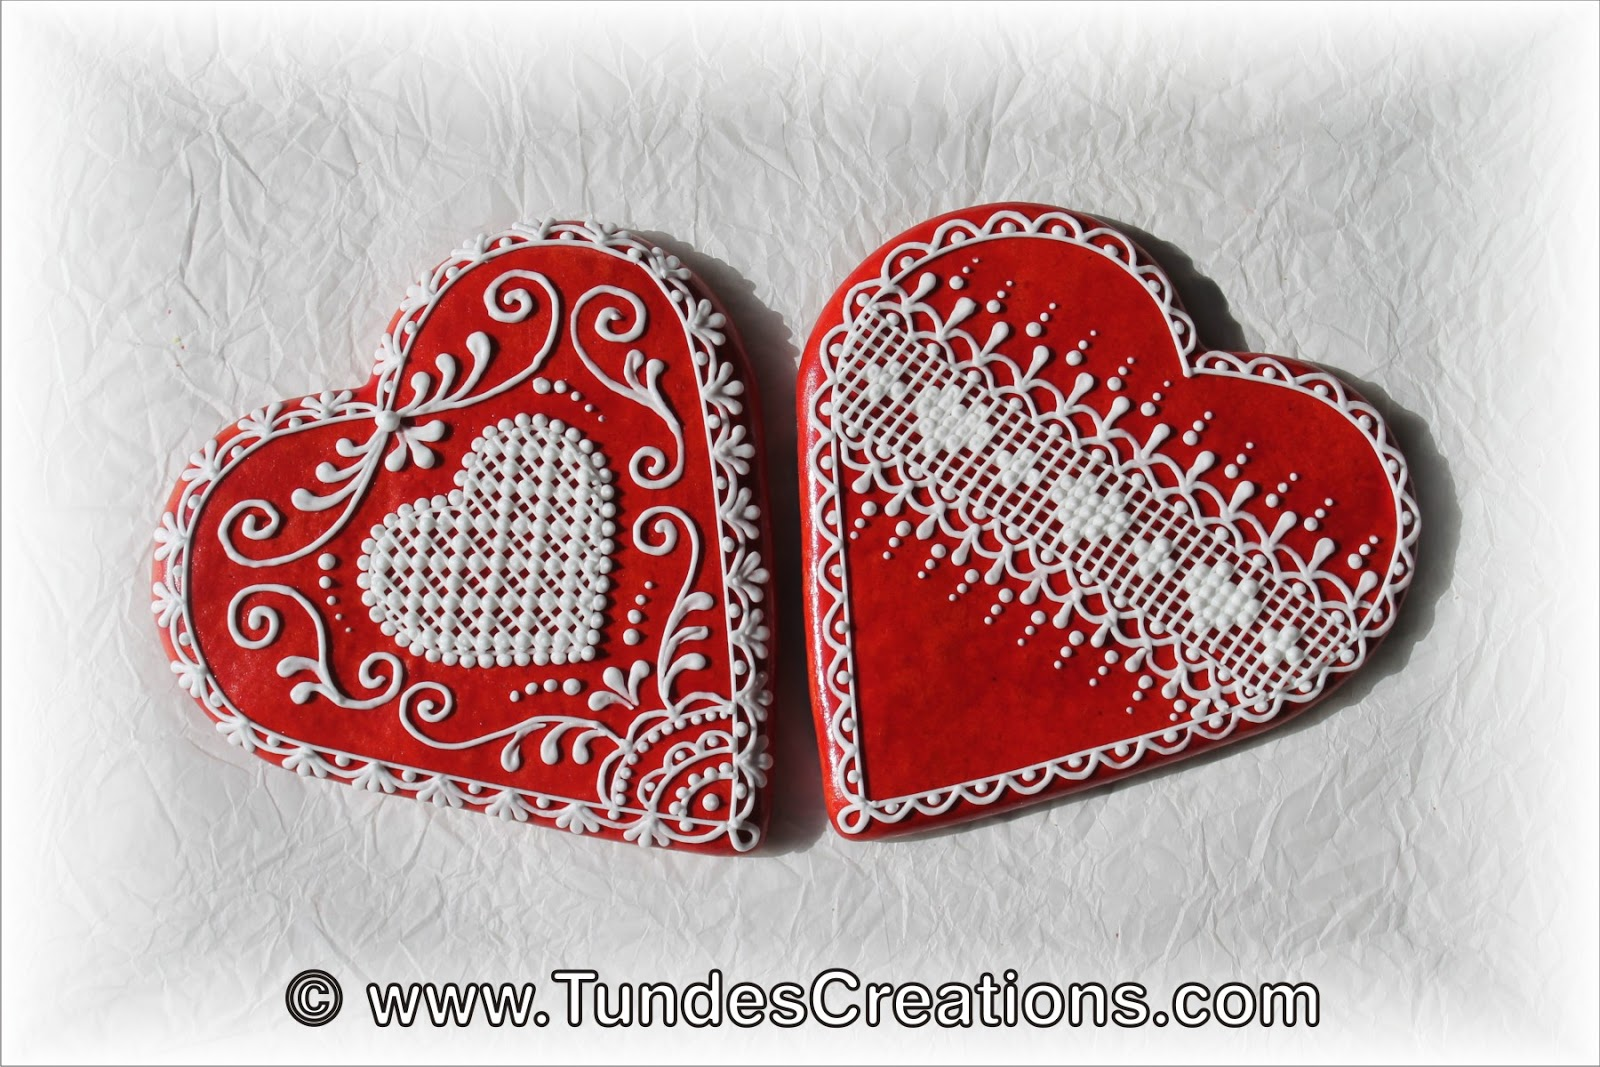 The Gingerbread Artist Big Red Gingerbread Hearts With Lace